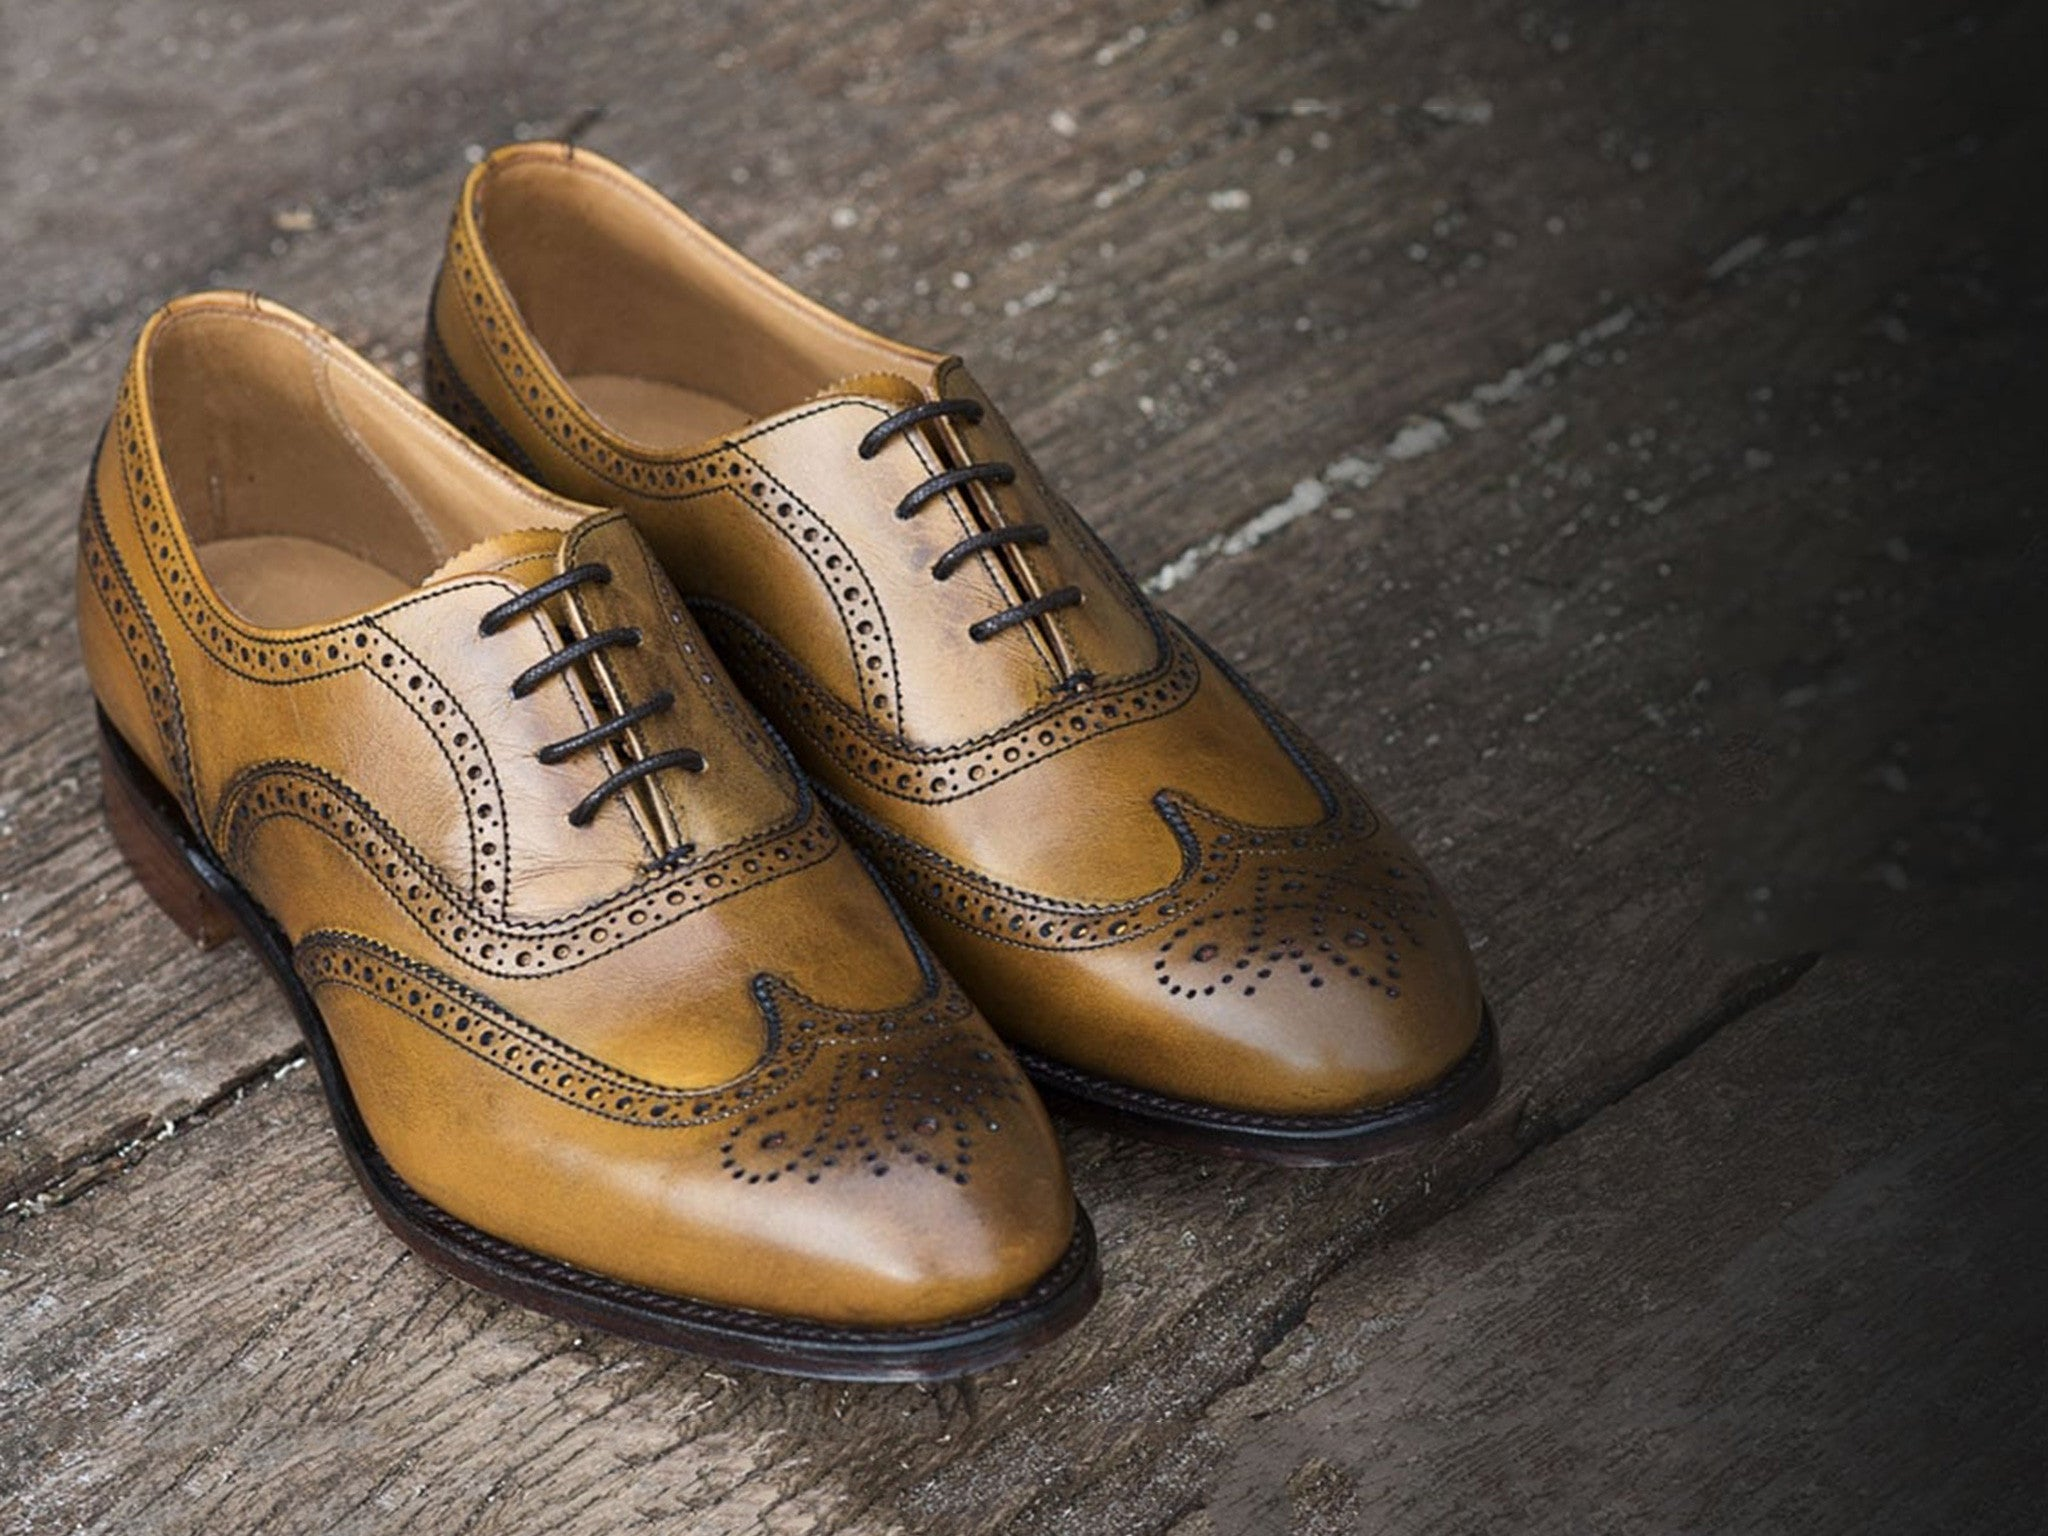 Cheaney Shoes - The History of Cheaney